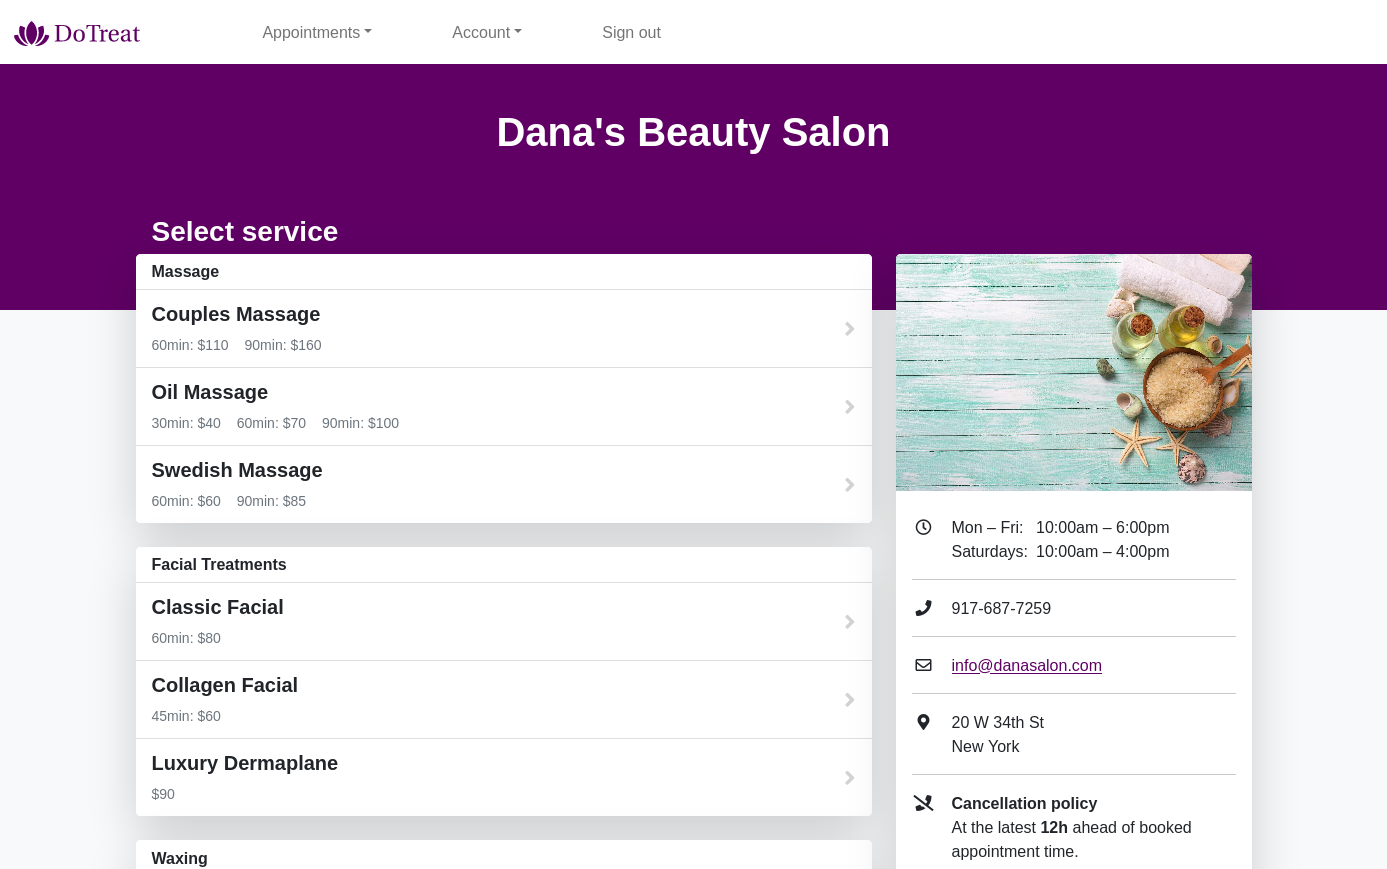 An example of the client self-booking page.